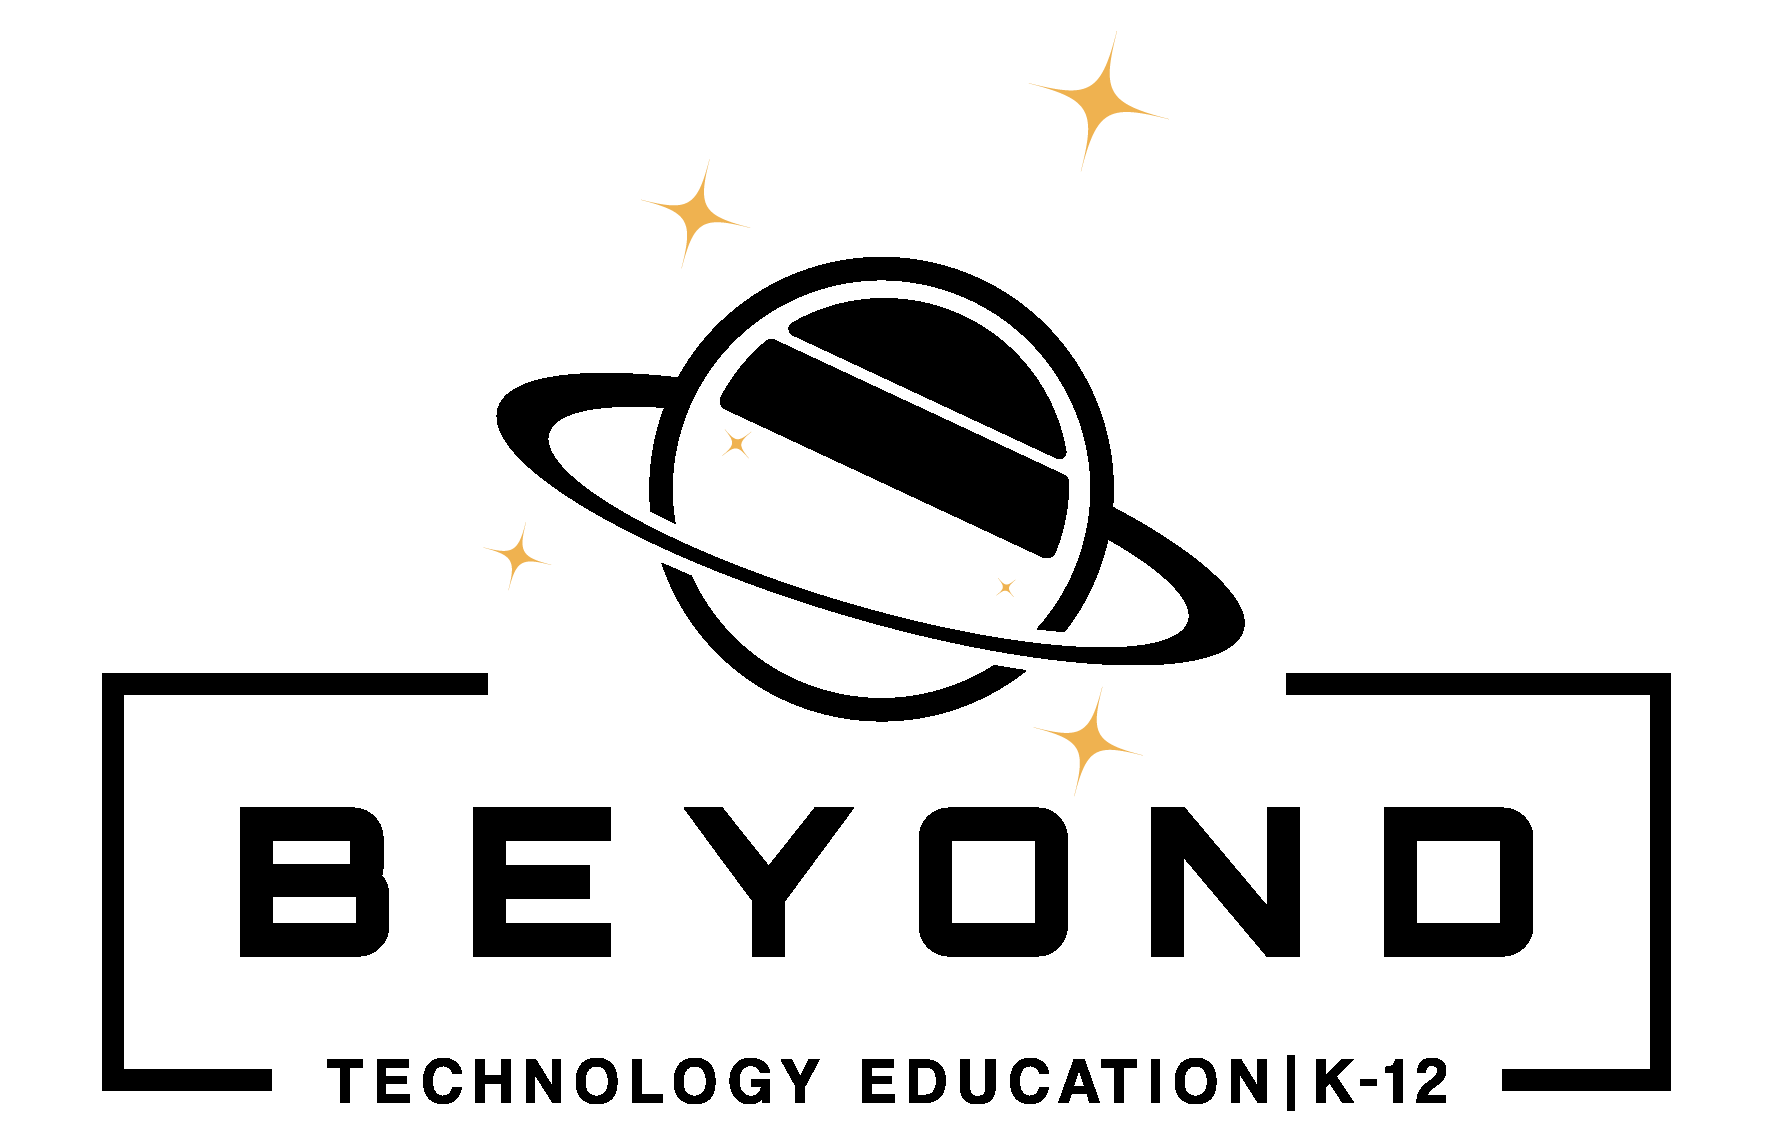 Computer Science and Literacy Curriculum for K-12